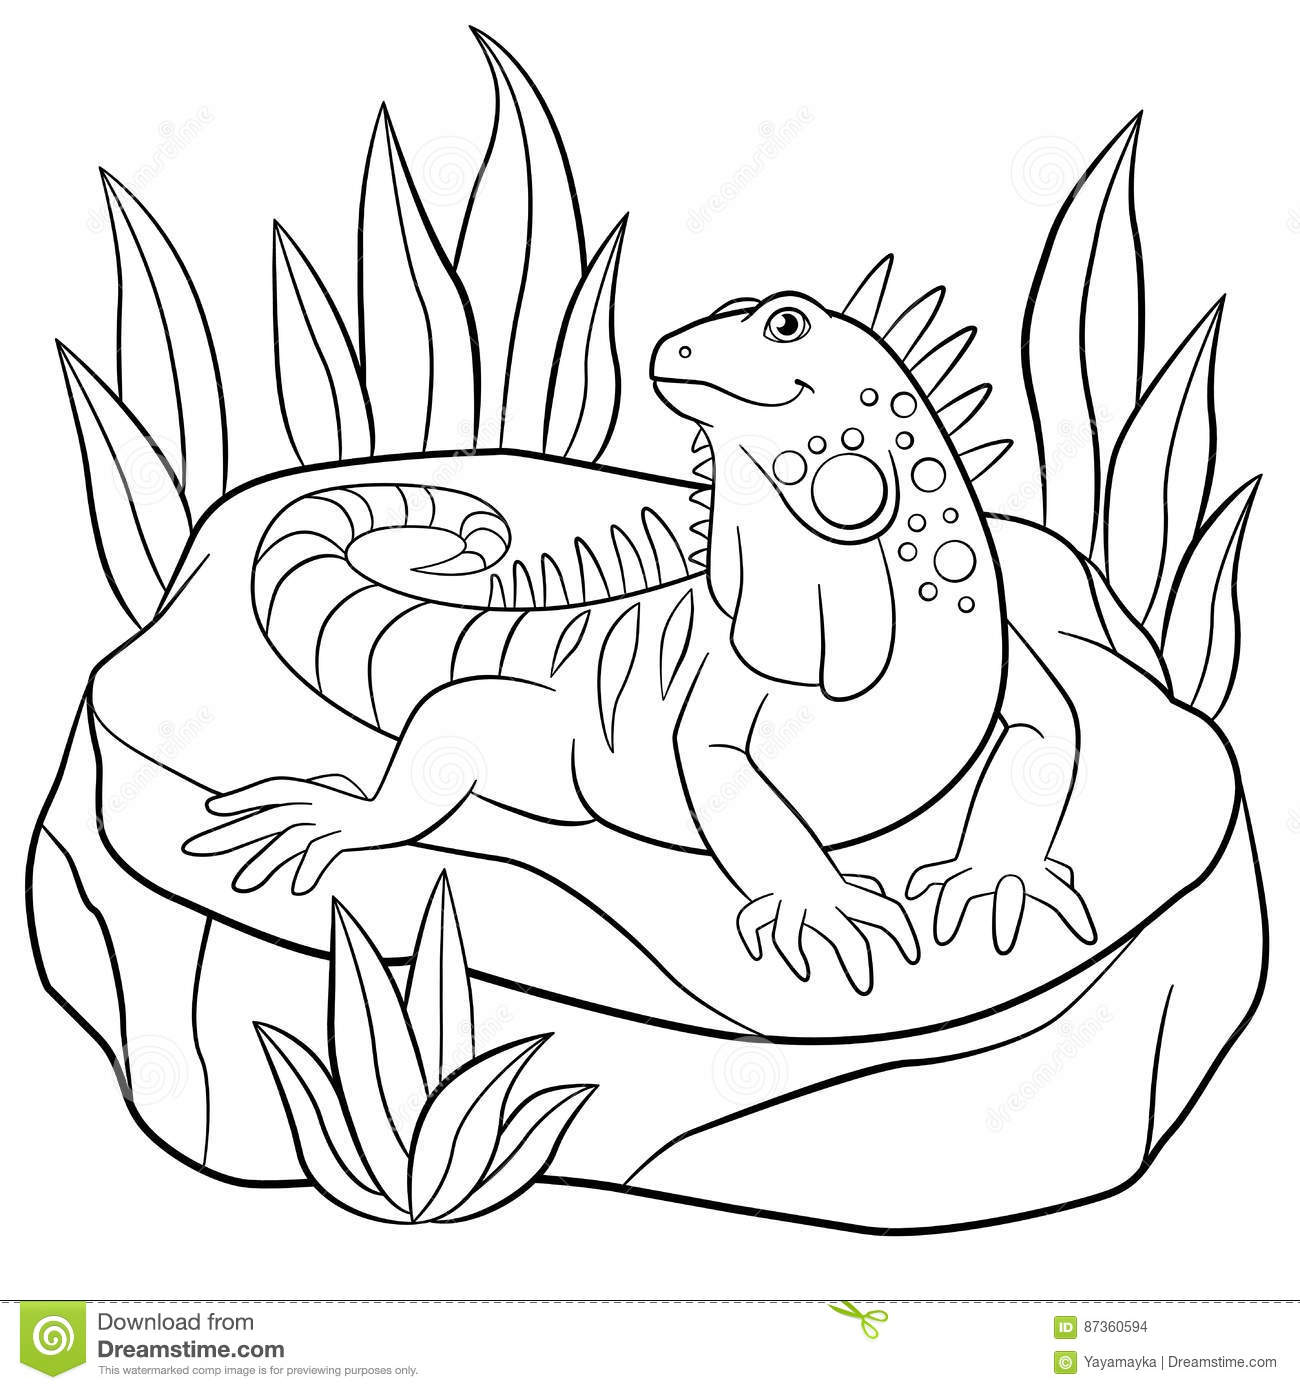 Coloring Pages Cute Iguana Sits On The Rock Stock Vector